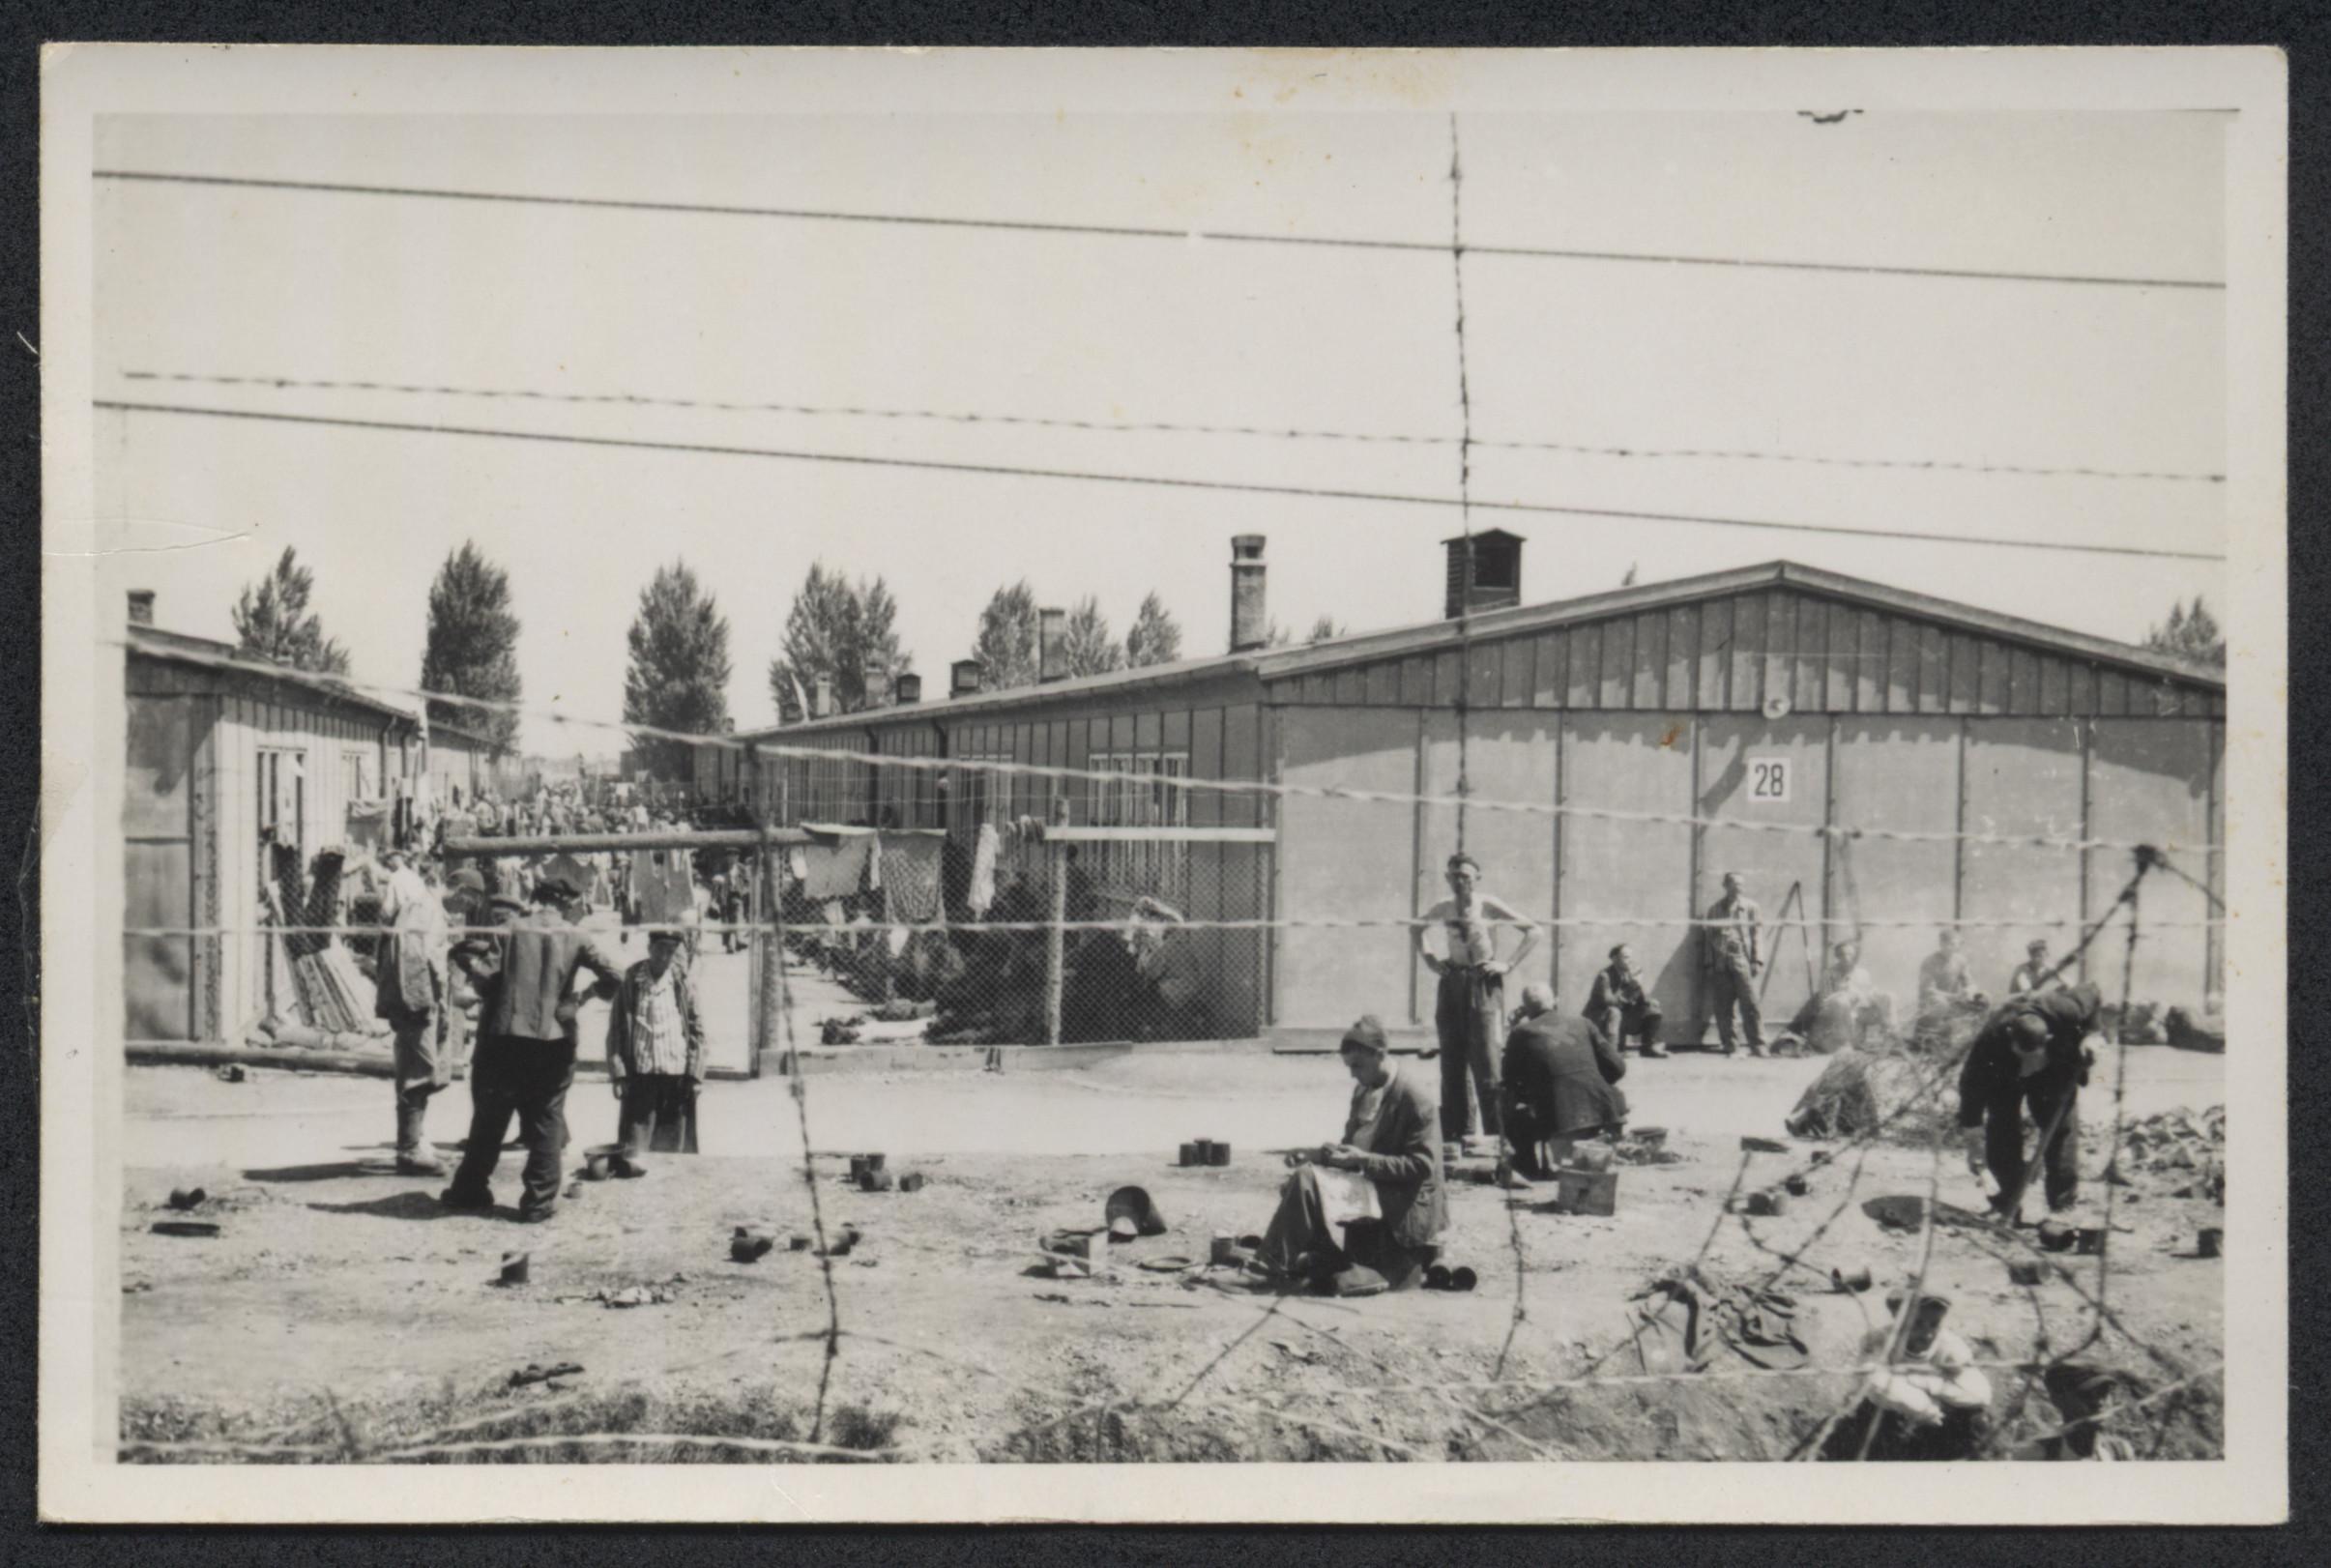 Survivors gather in small groups in front of the barracks in Dachau.